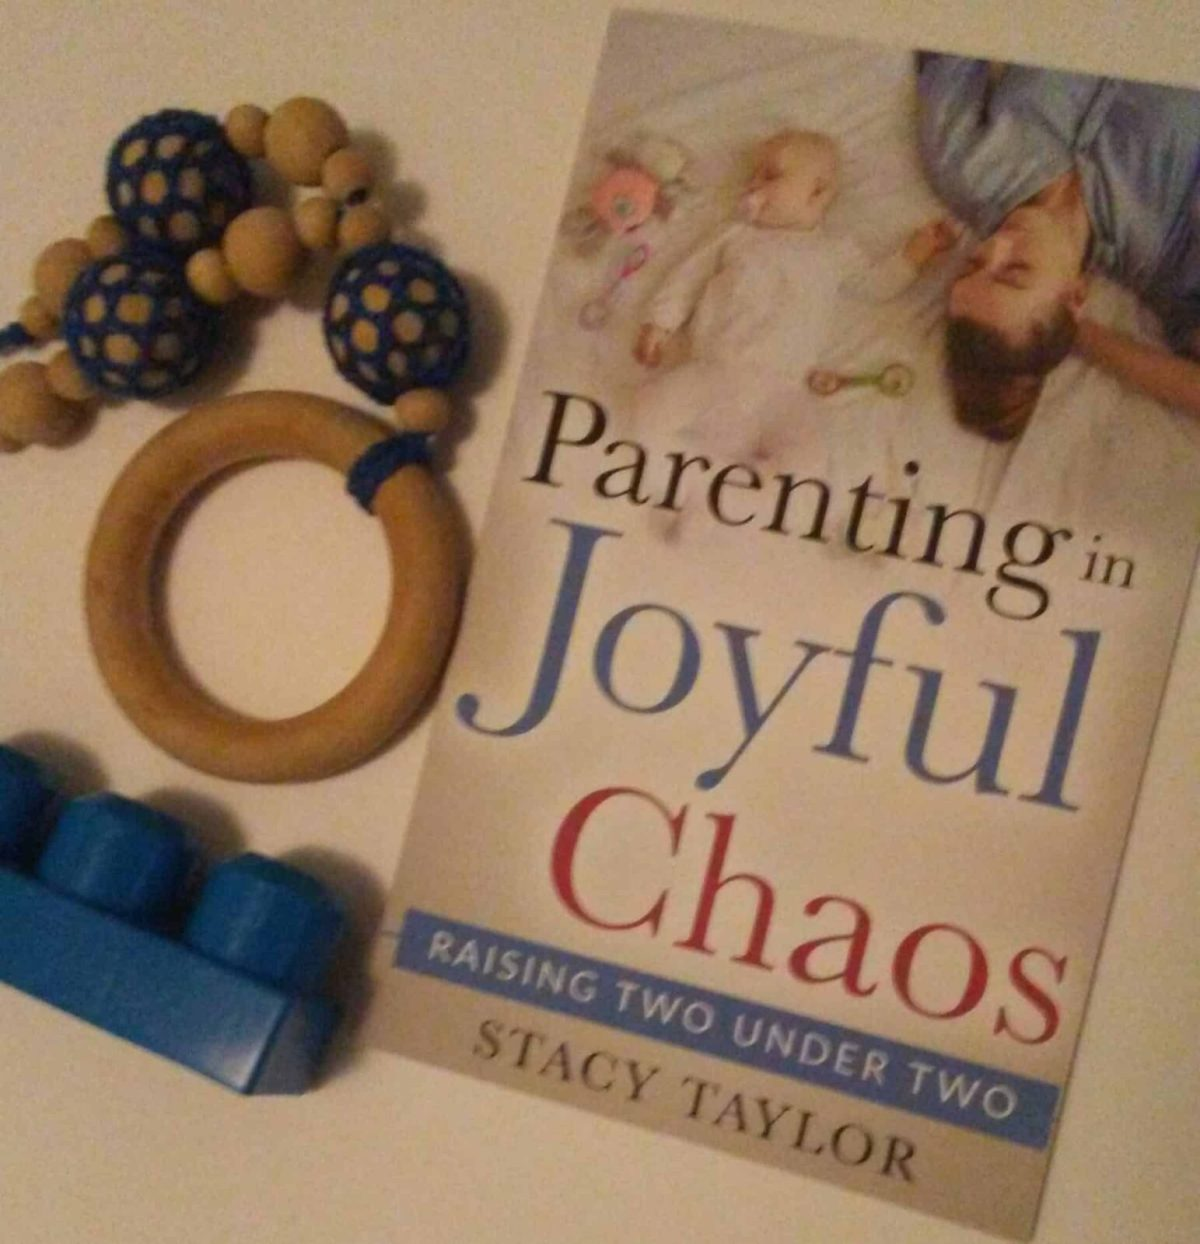 Parenting in Joyful Chaos Book Review